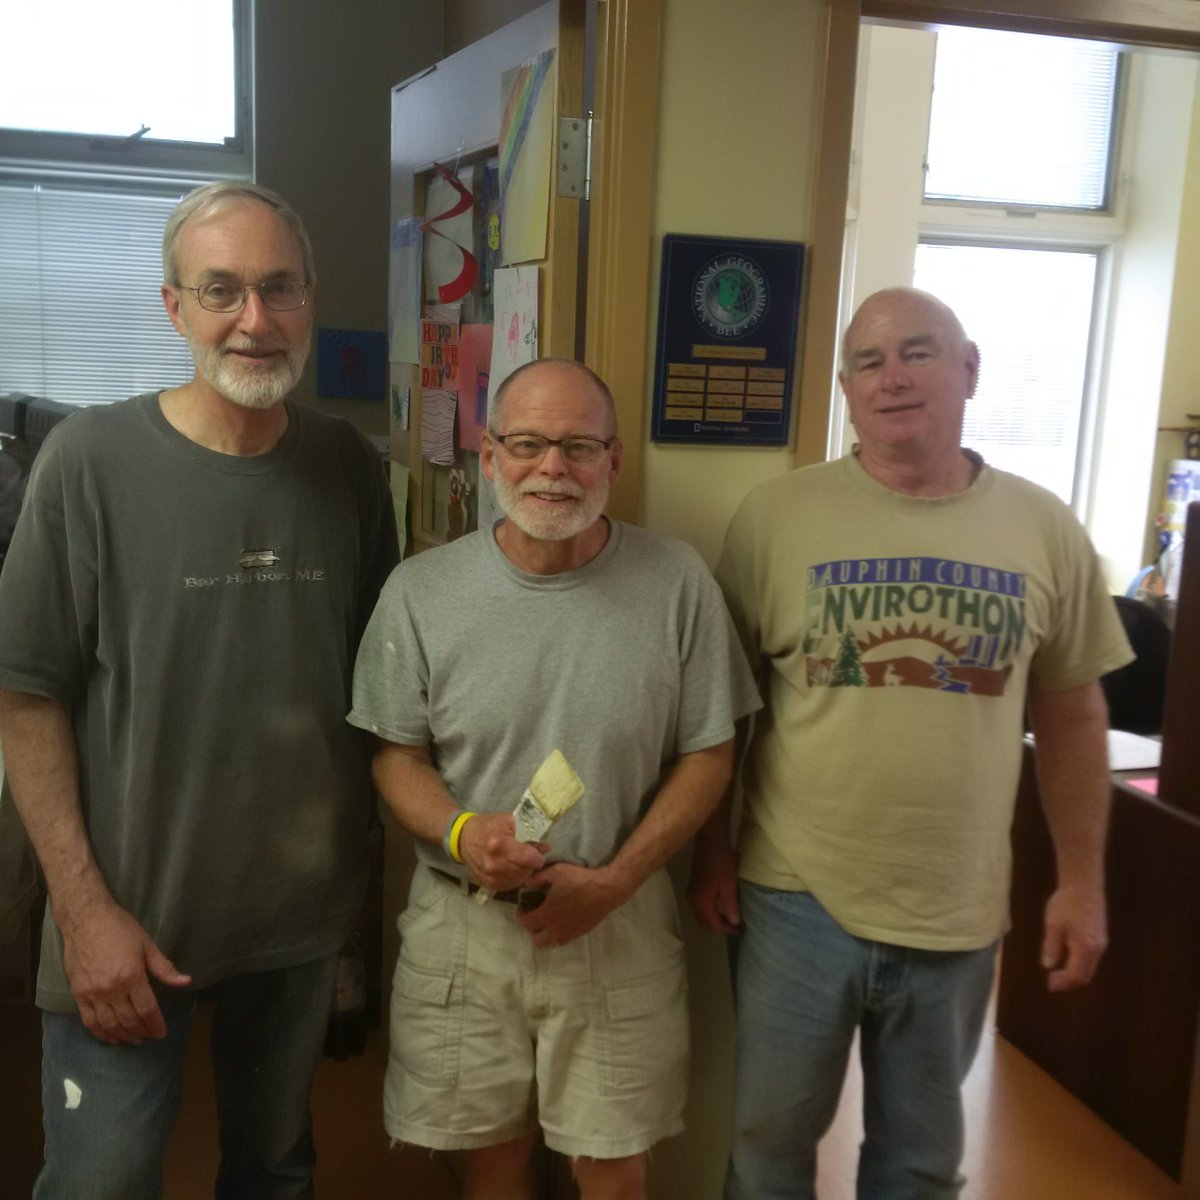 Thanks to Jim, Gerry & Mike of @ststep, painting Head of School's office as we ready it for new HoS Ellen Hartman